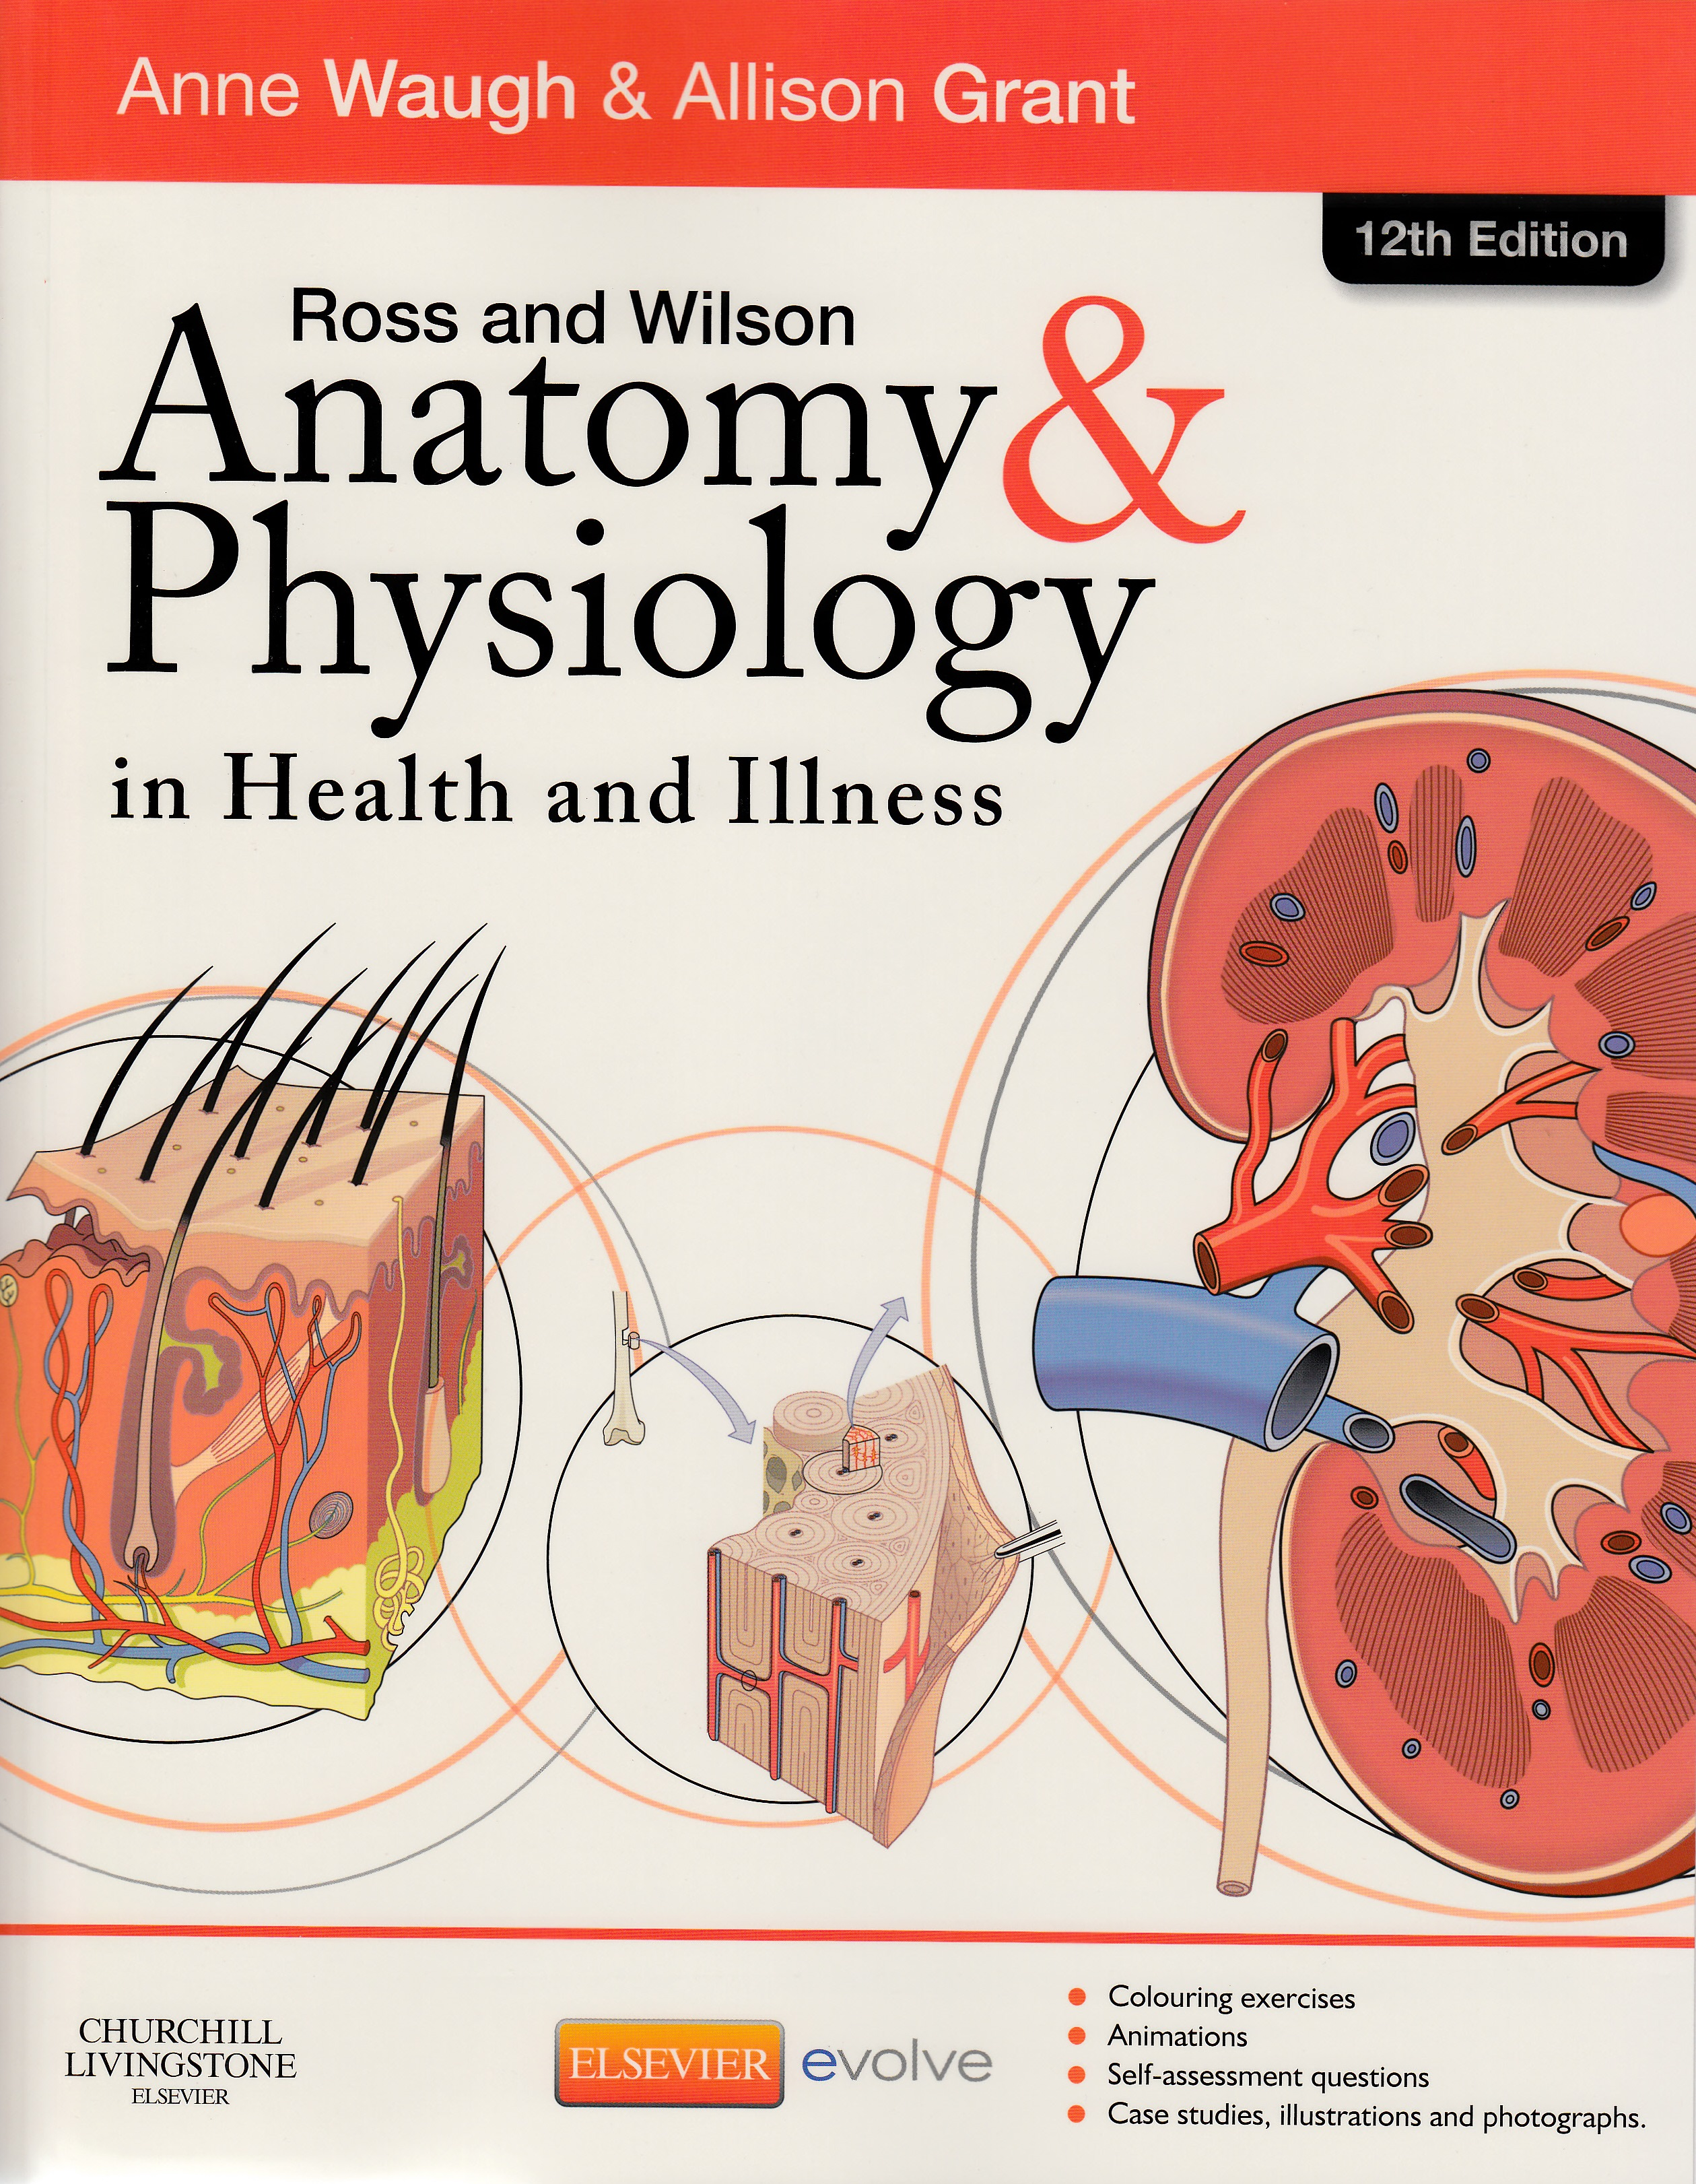 Anatomy & Physiology in Health and Illness